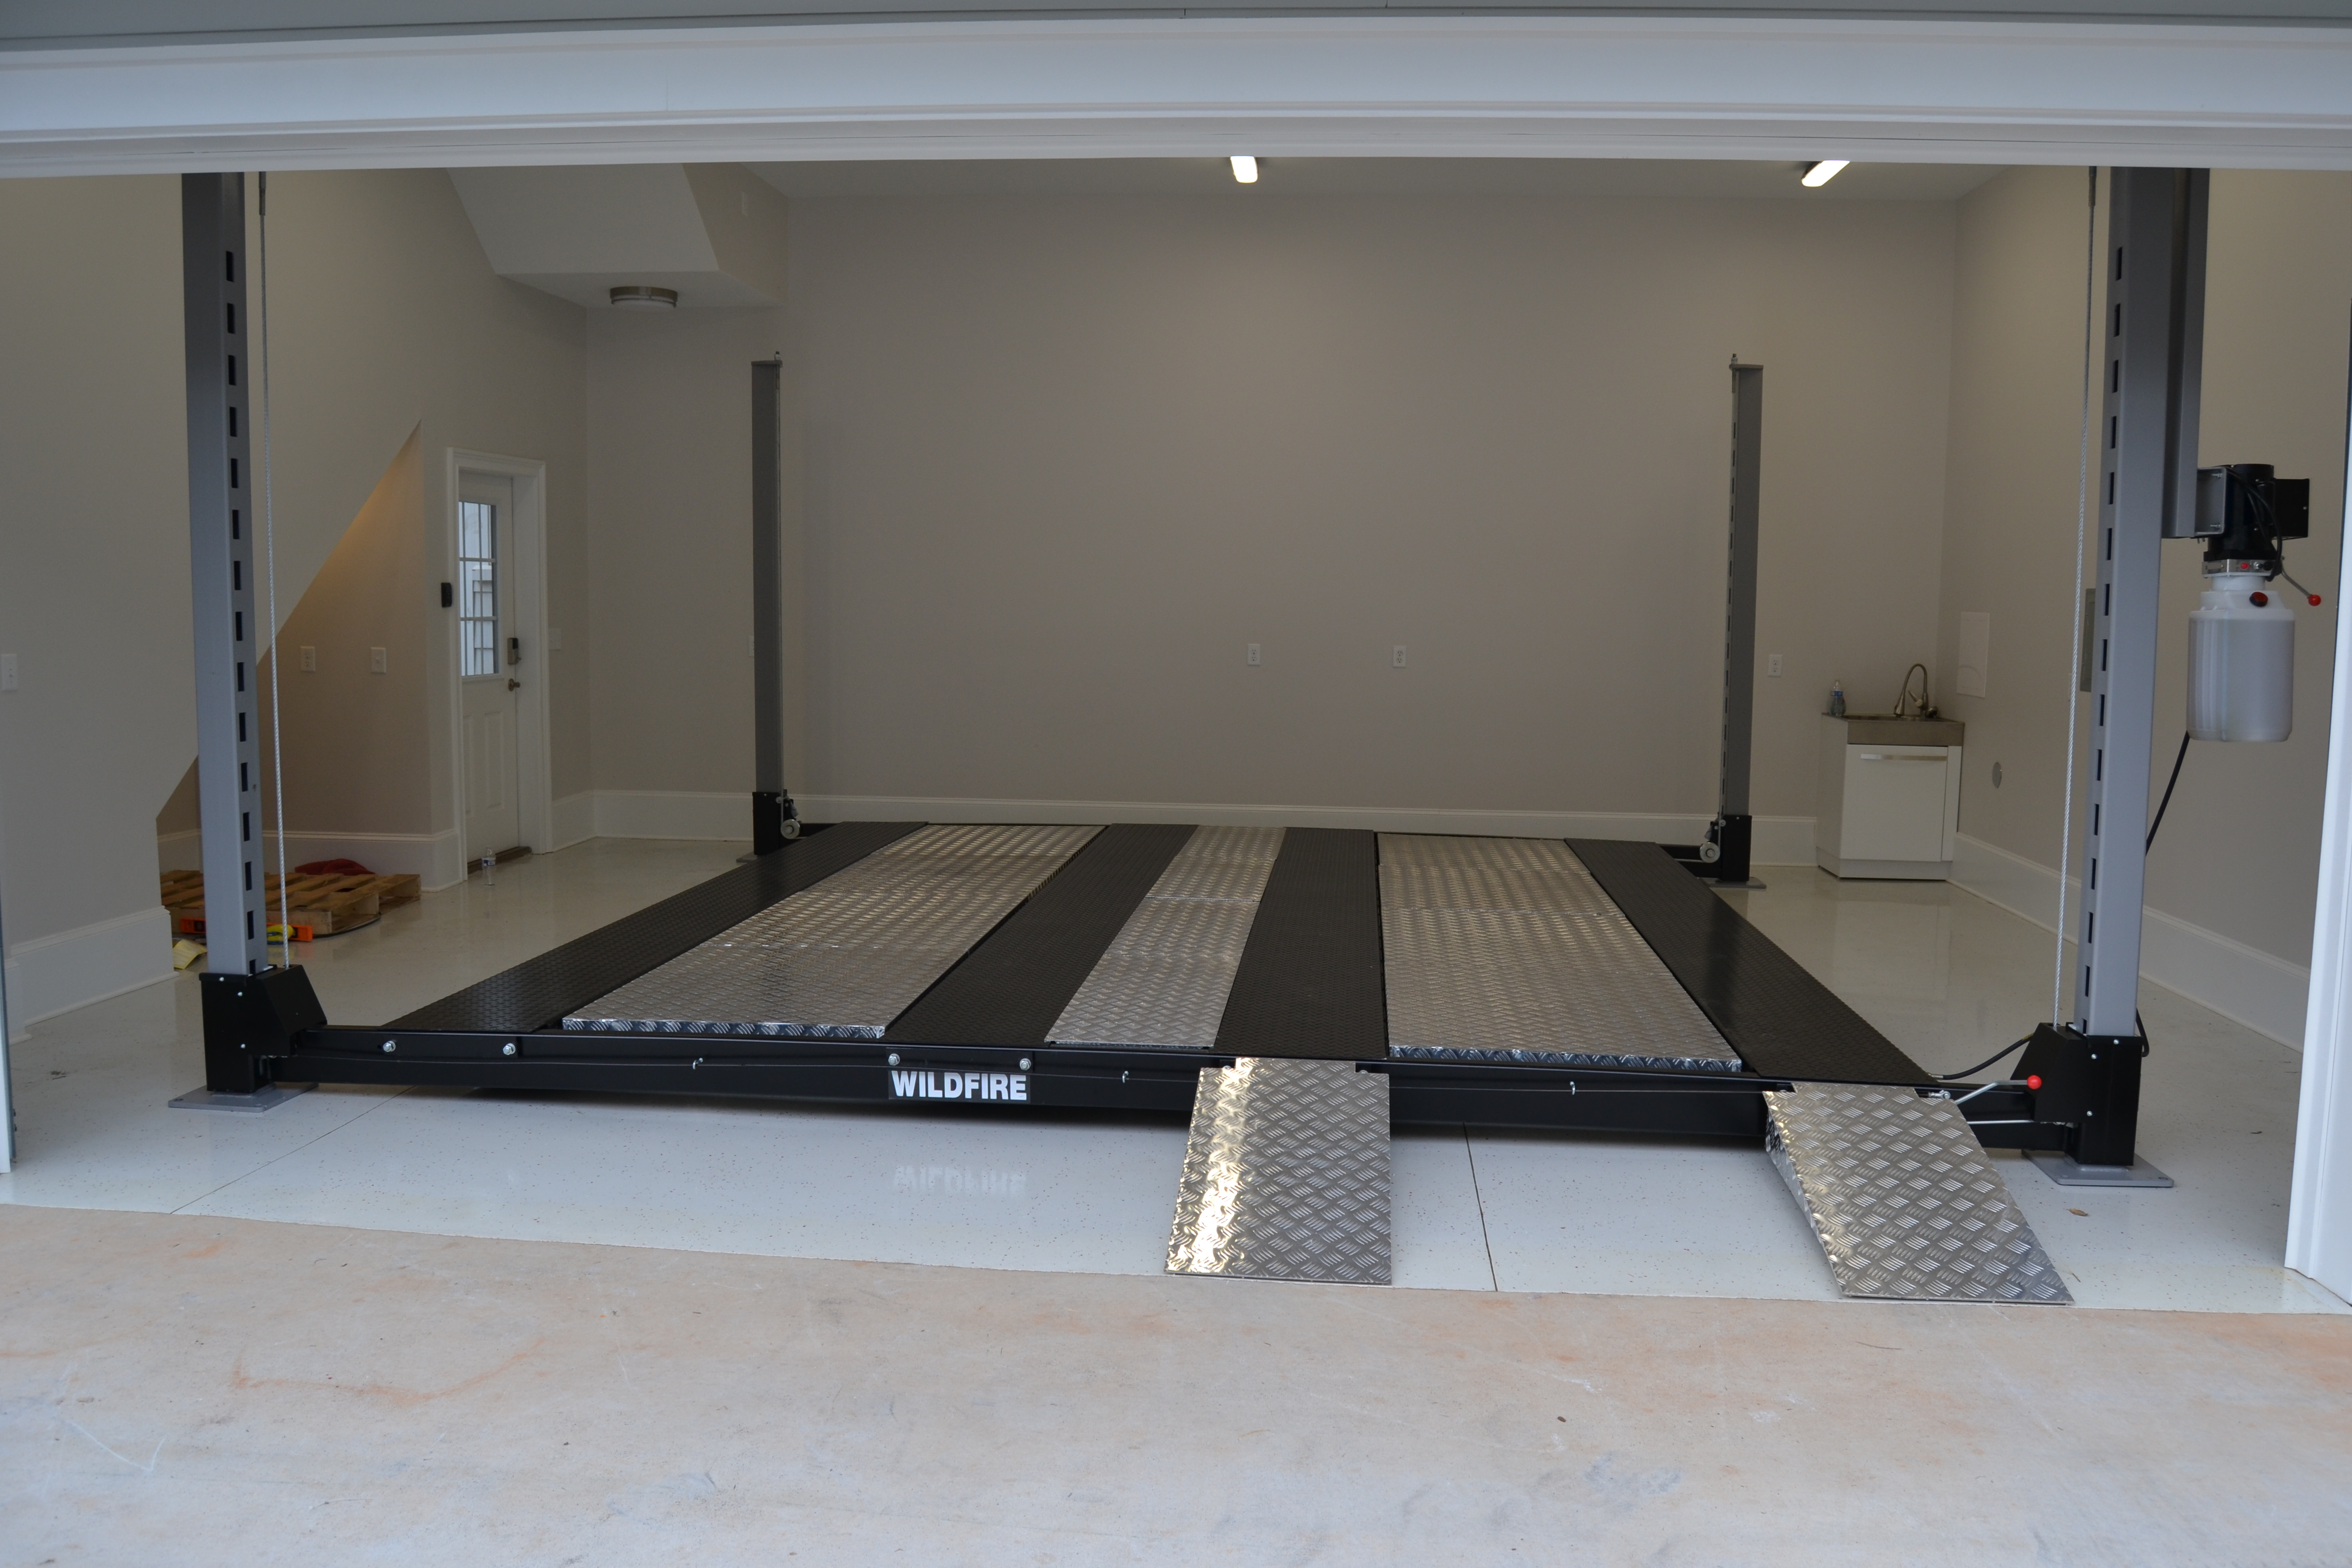 48 Aluminum Approach Ramps (1 Set Included) - Wildfire Lifts Double Wide Car Lift